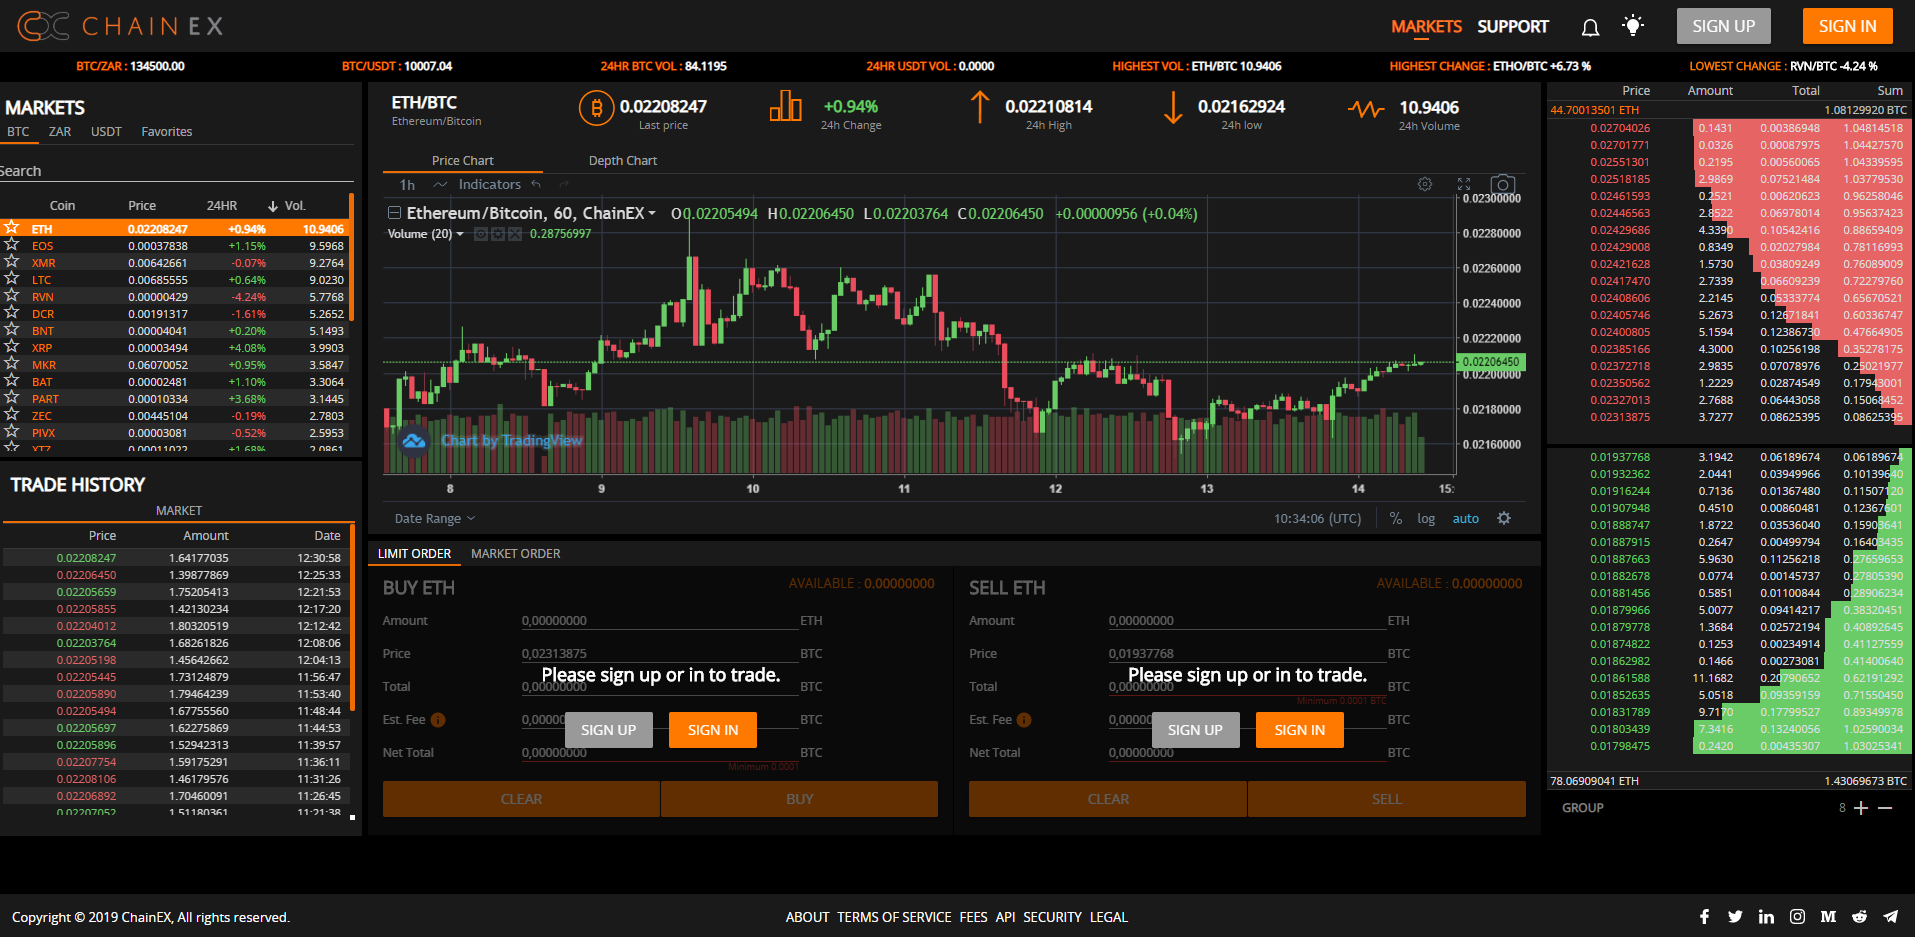 ChainEX Trading View